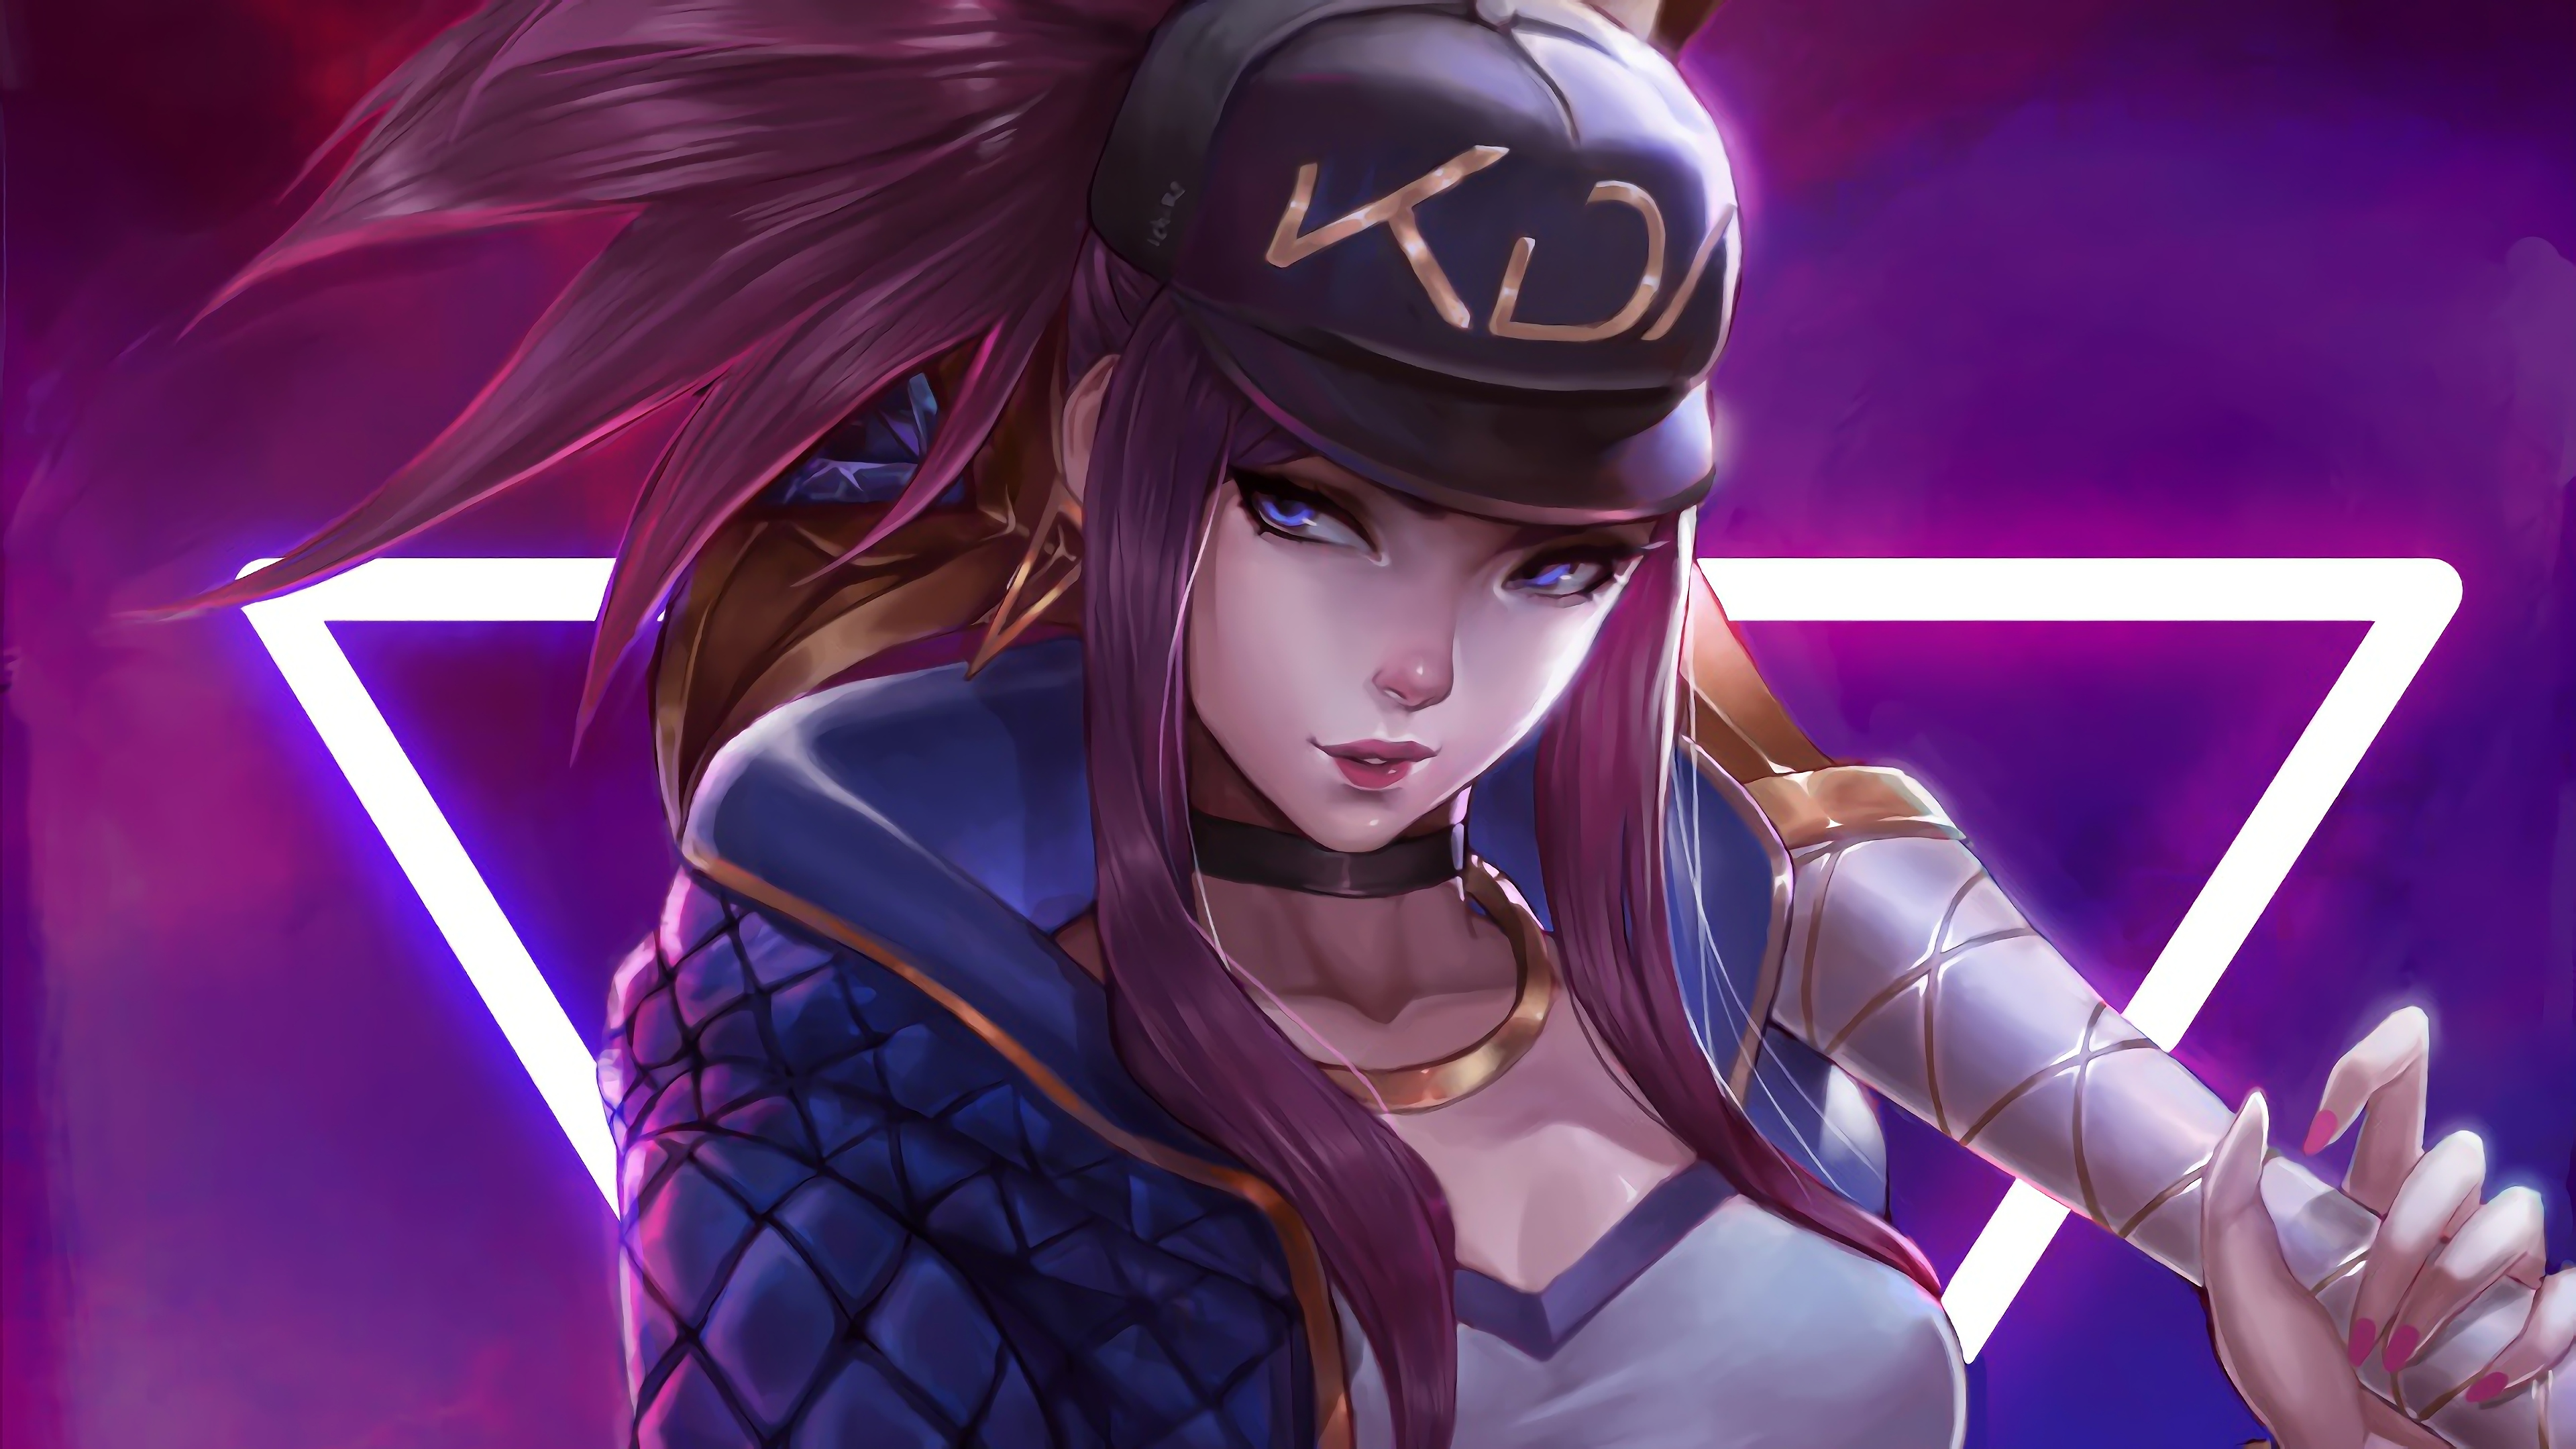 Kda League Of Legends 4k Hd Games 4k Wallpapers Images